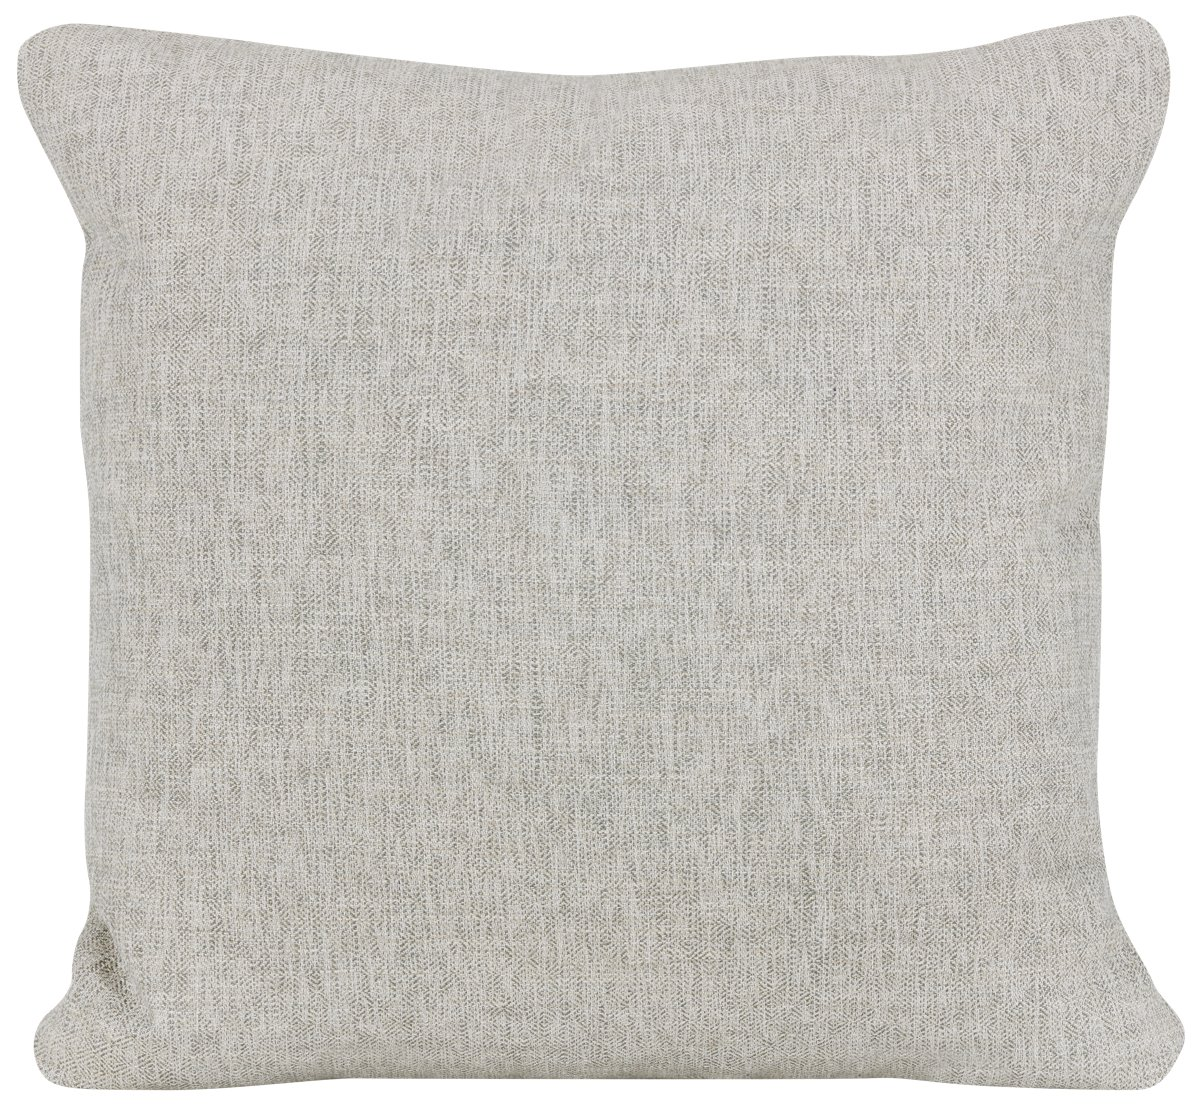 City Furniture: Rodeo Light Gray Fabric Square Accent Pillow